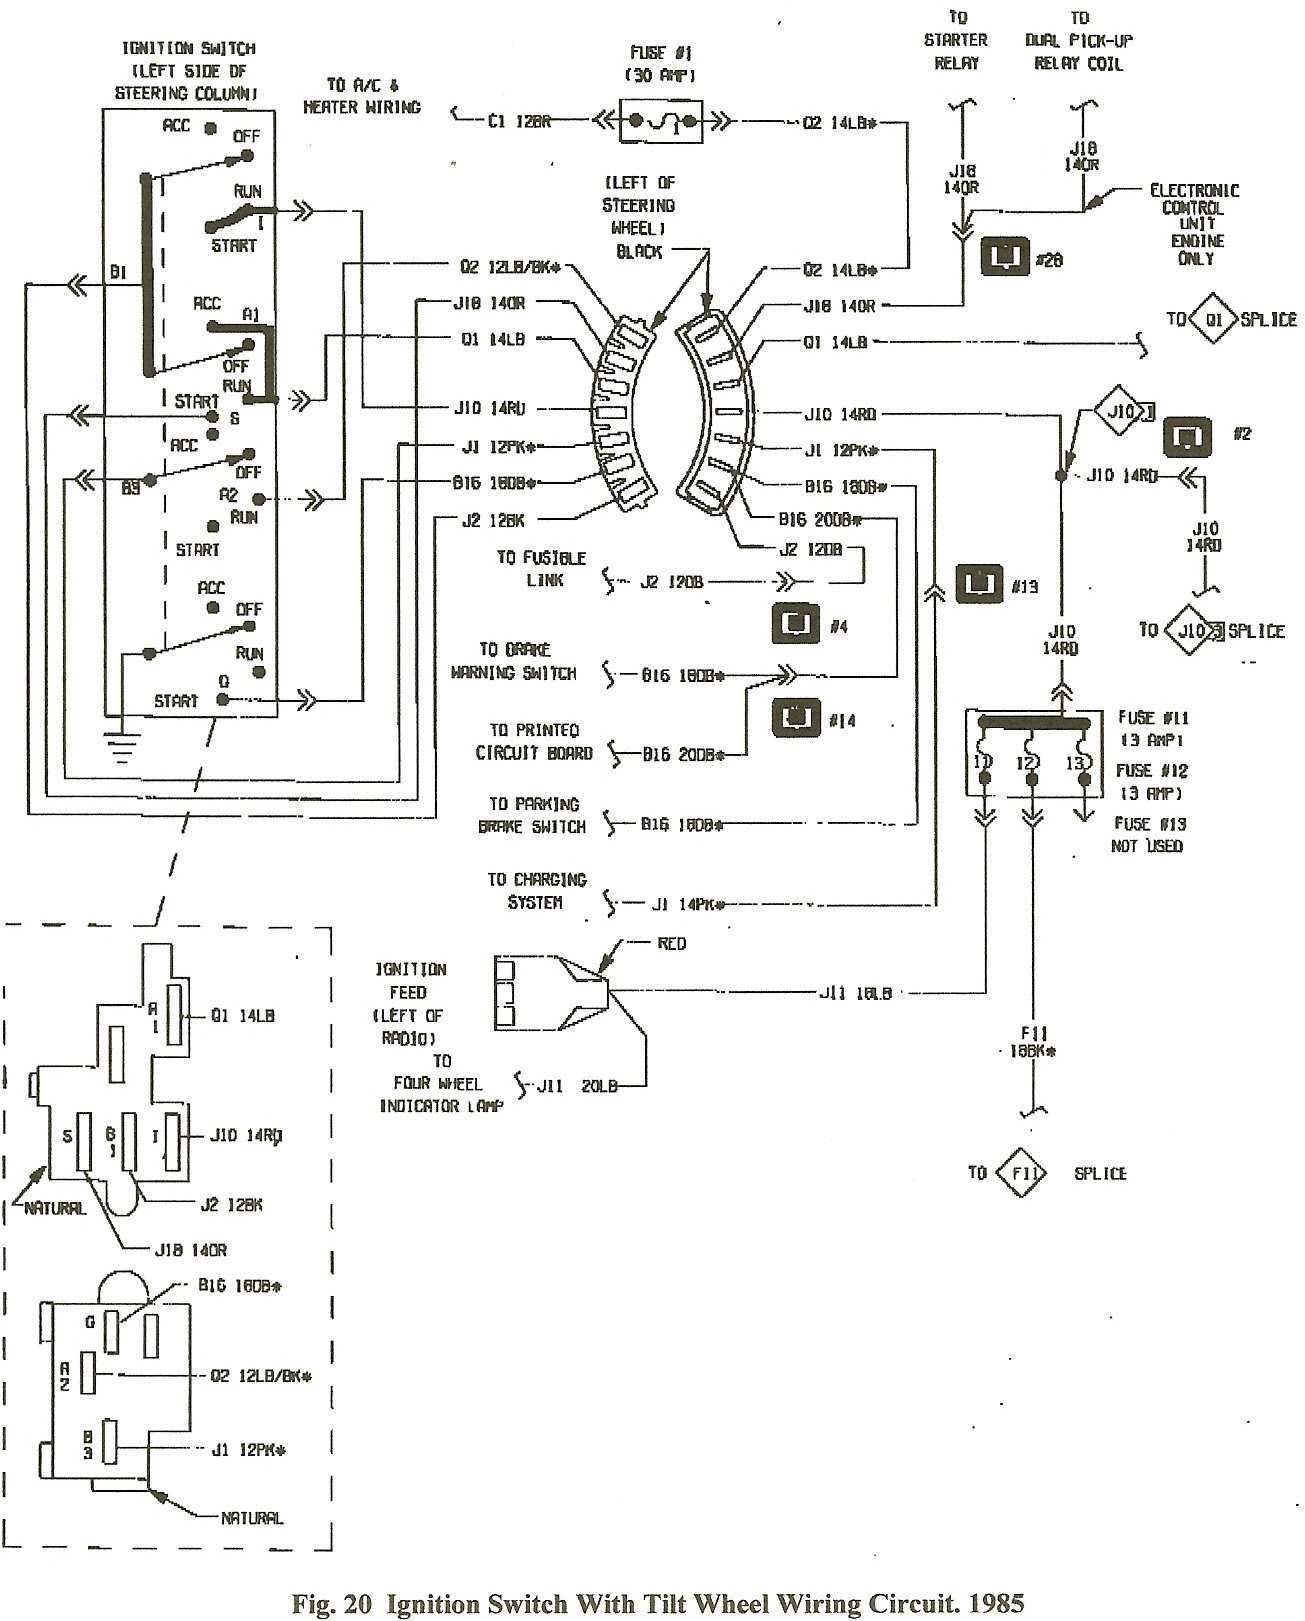 Fifth Wheel Wiring Harness Diagram - Wiring Diagrams Hubs - Fifth Wheel Trailer Wiring Diagram